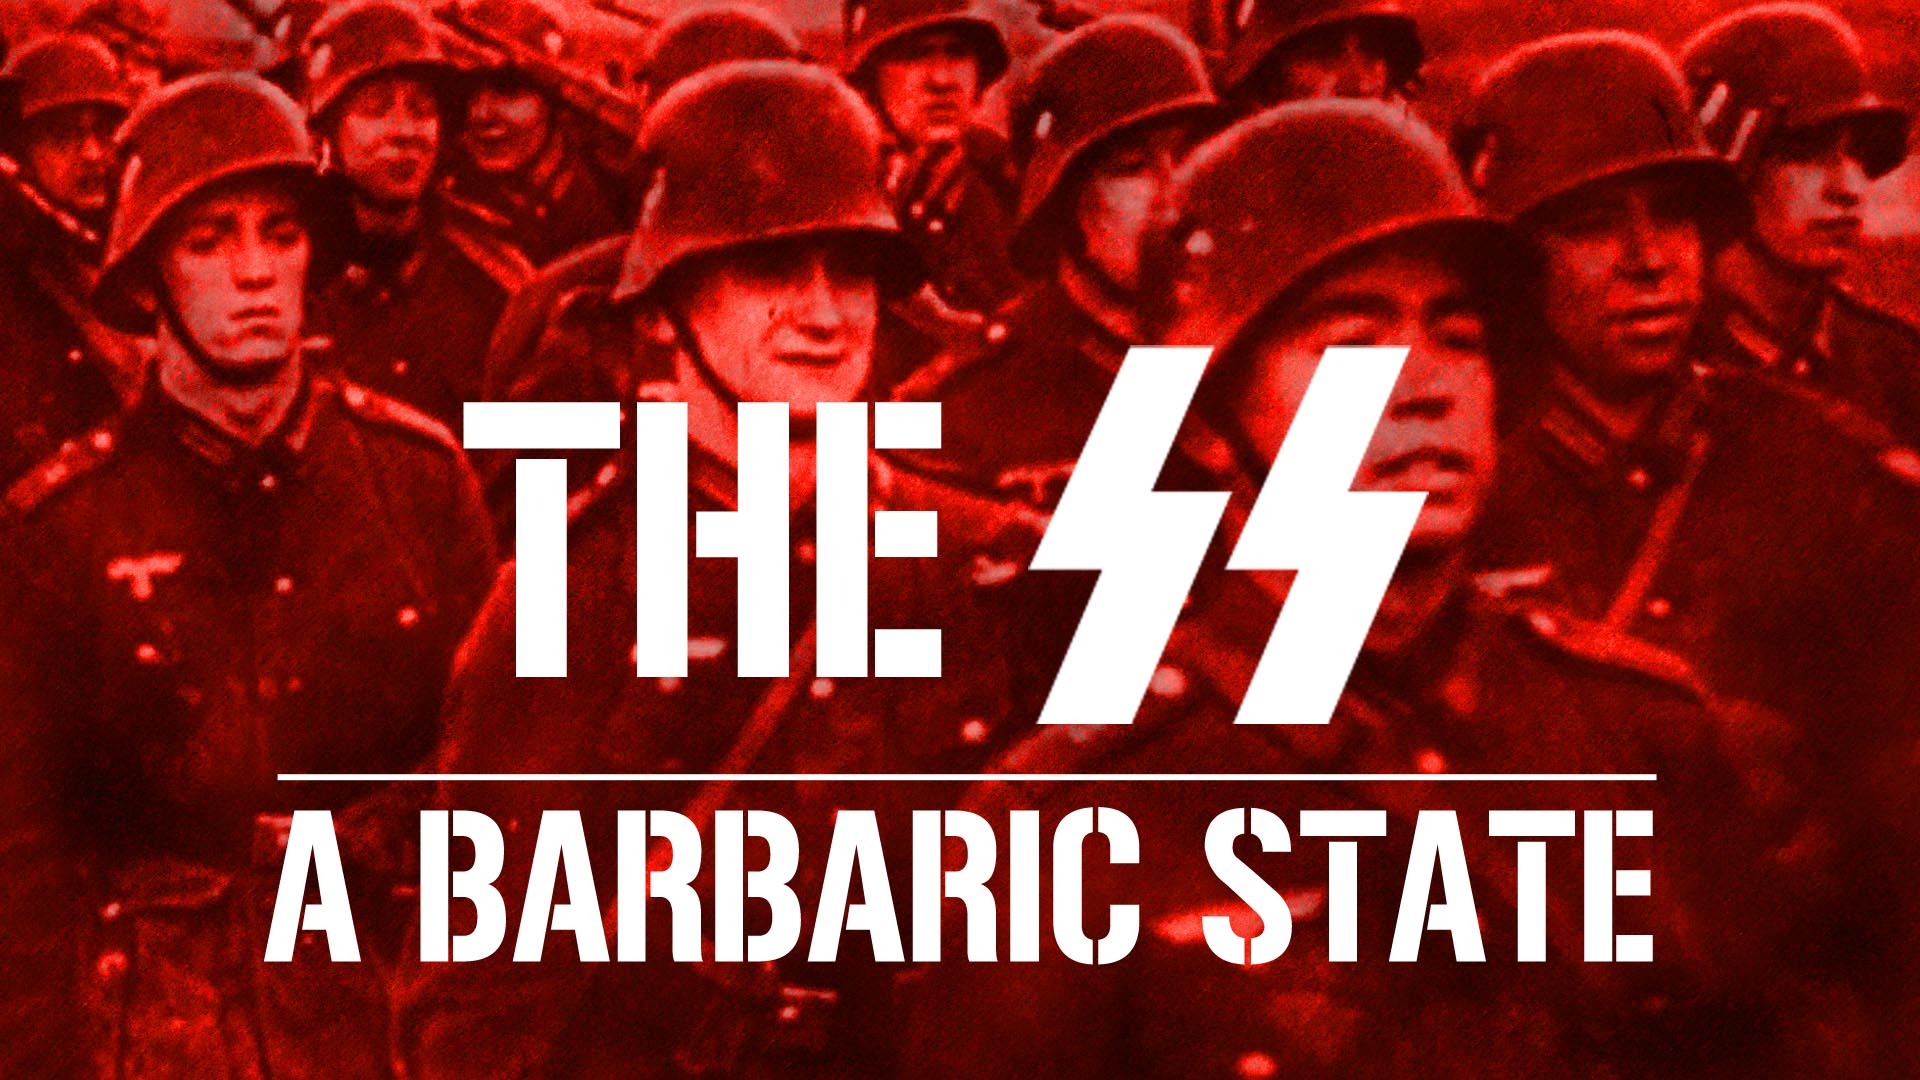 The SS, a Barbaric State